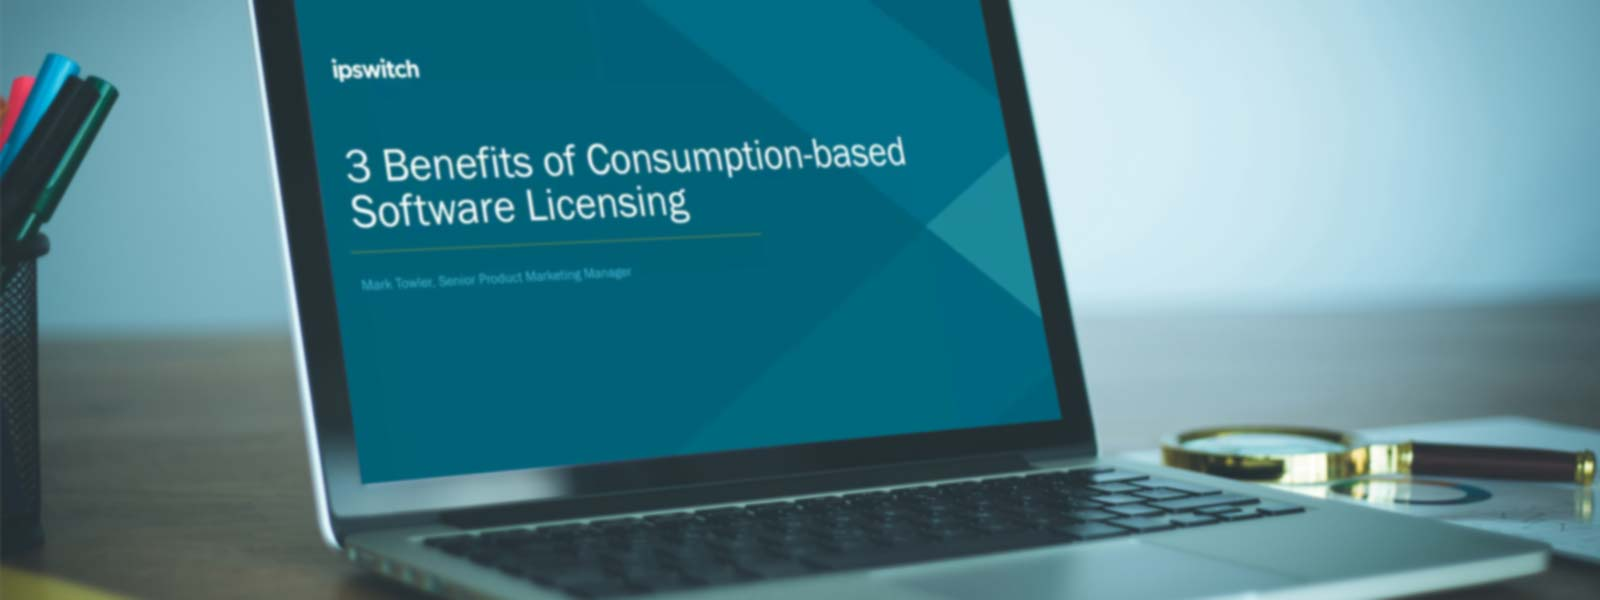 3-Benefits-of-Consumption-based-Software-Licensing